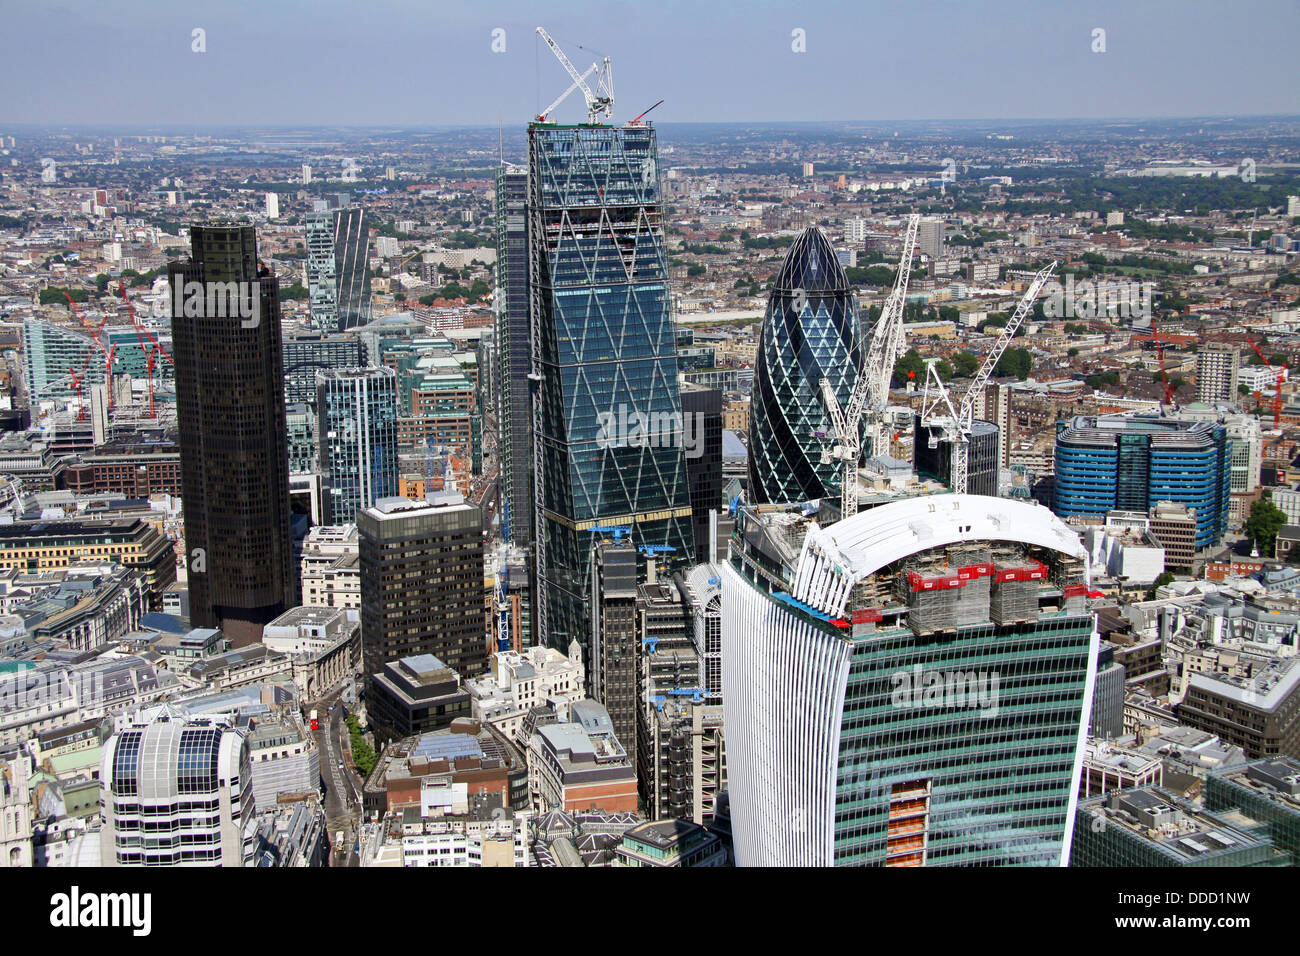 aerial view of the City of London including the Gherkin, Cheese Grater, Walkie-Talkie & NatWest building - Stock Image